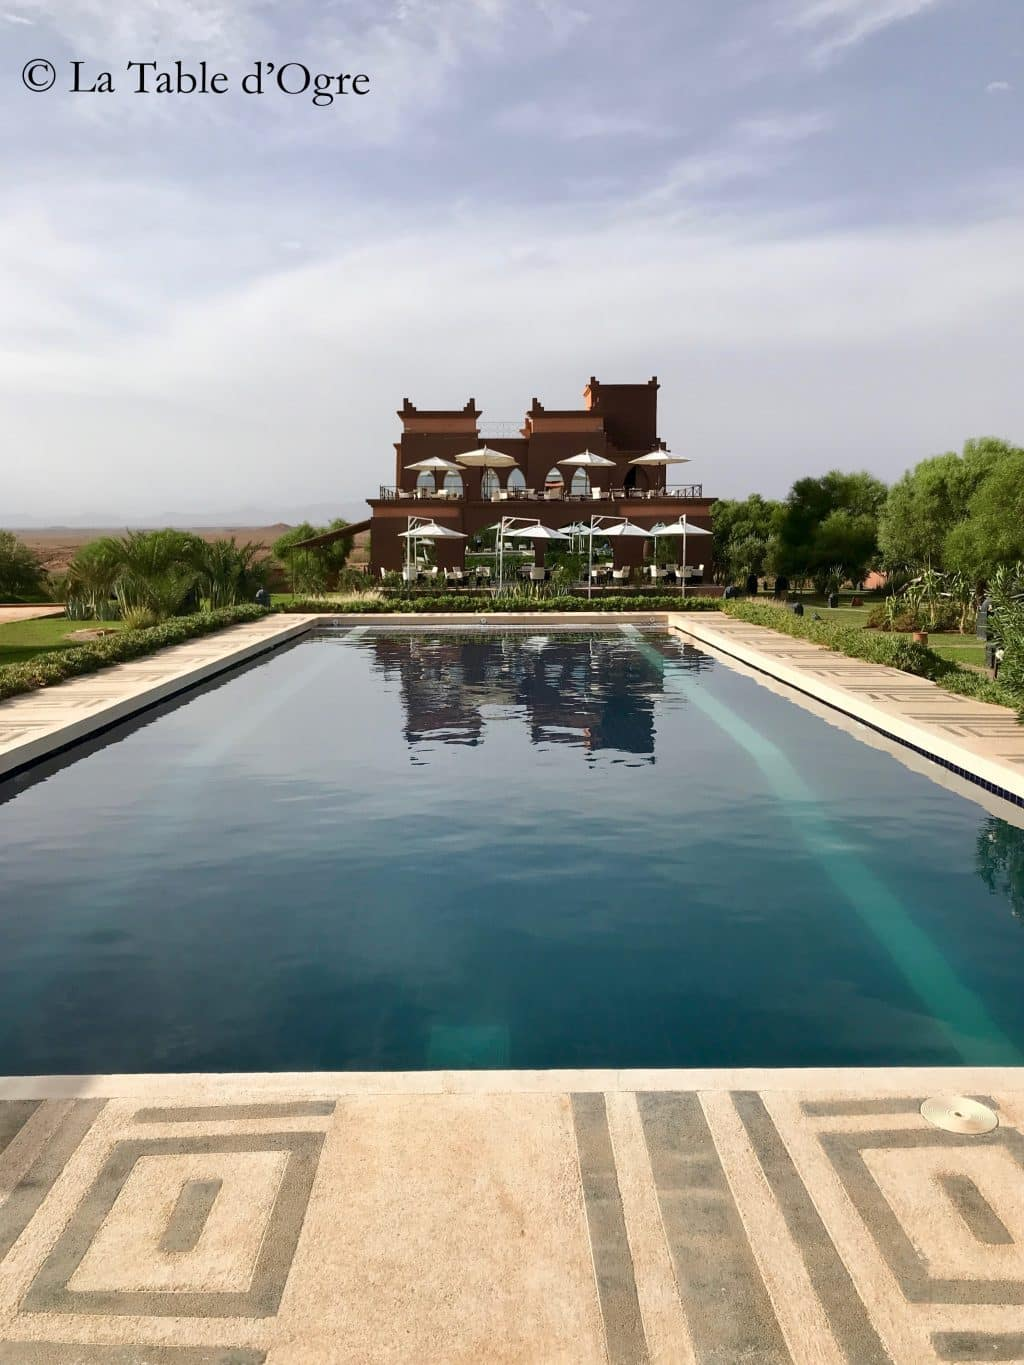 Sultana Royal Golf Club Piscine et bâtiment principal